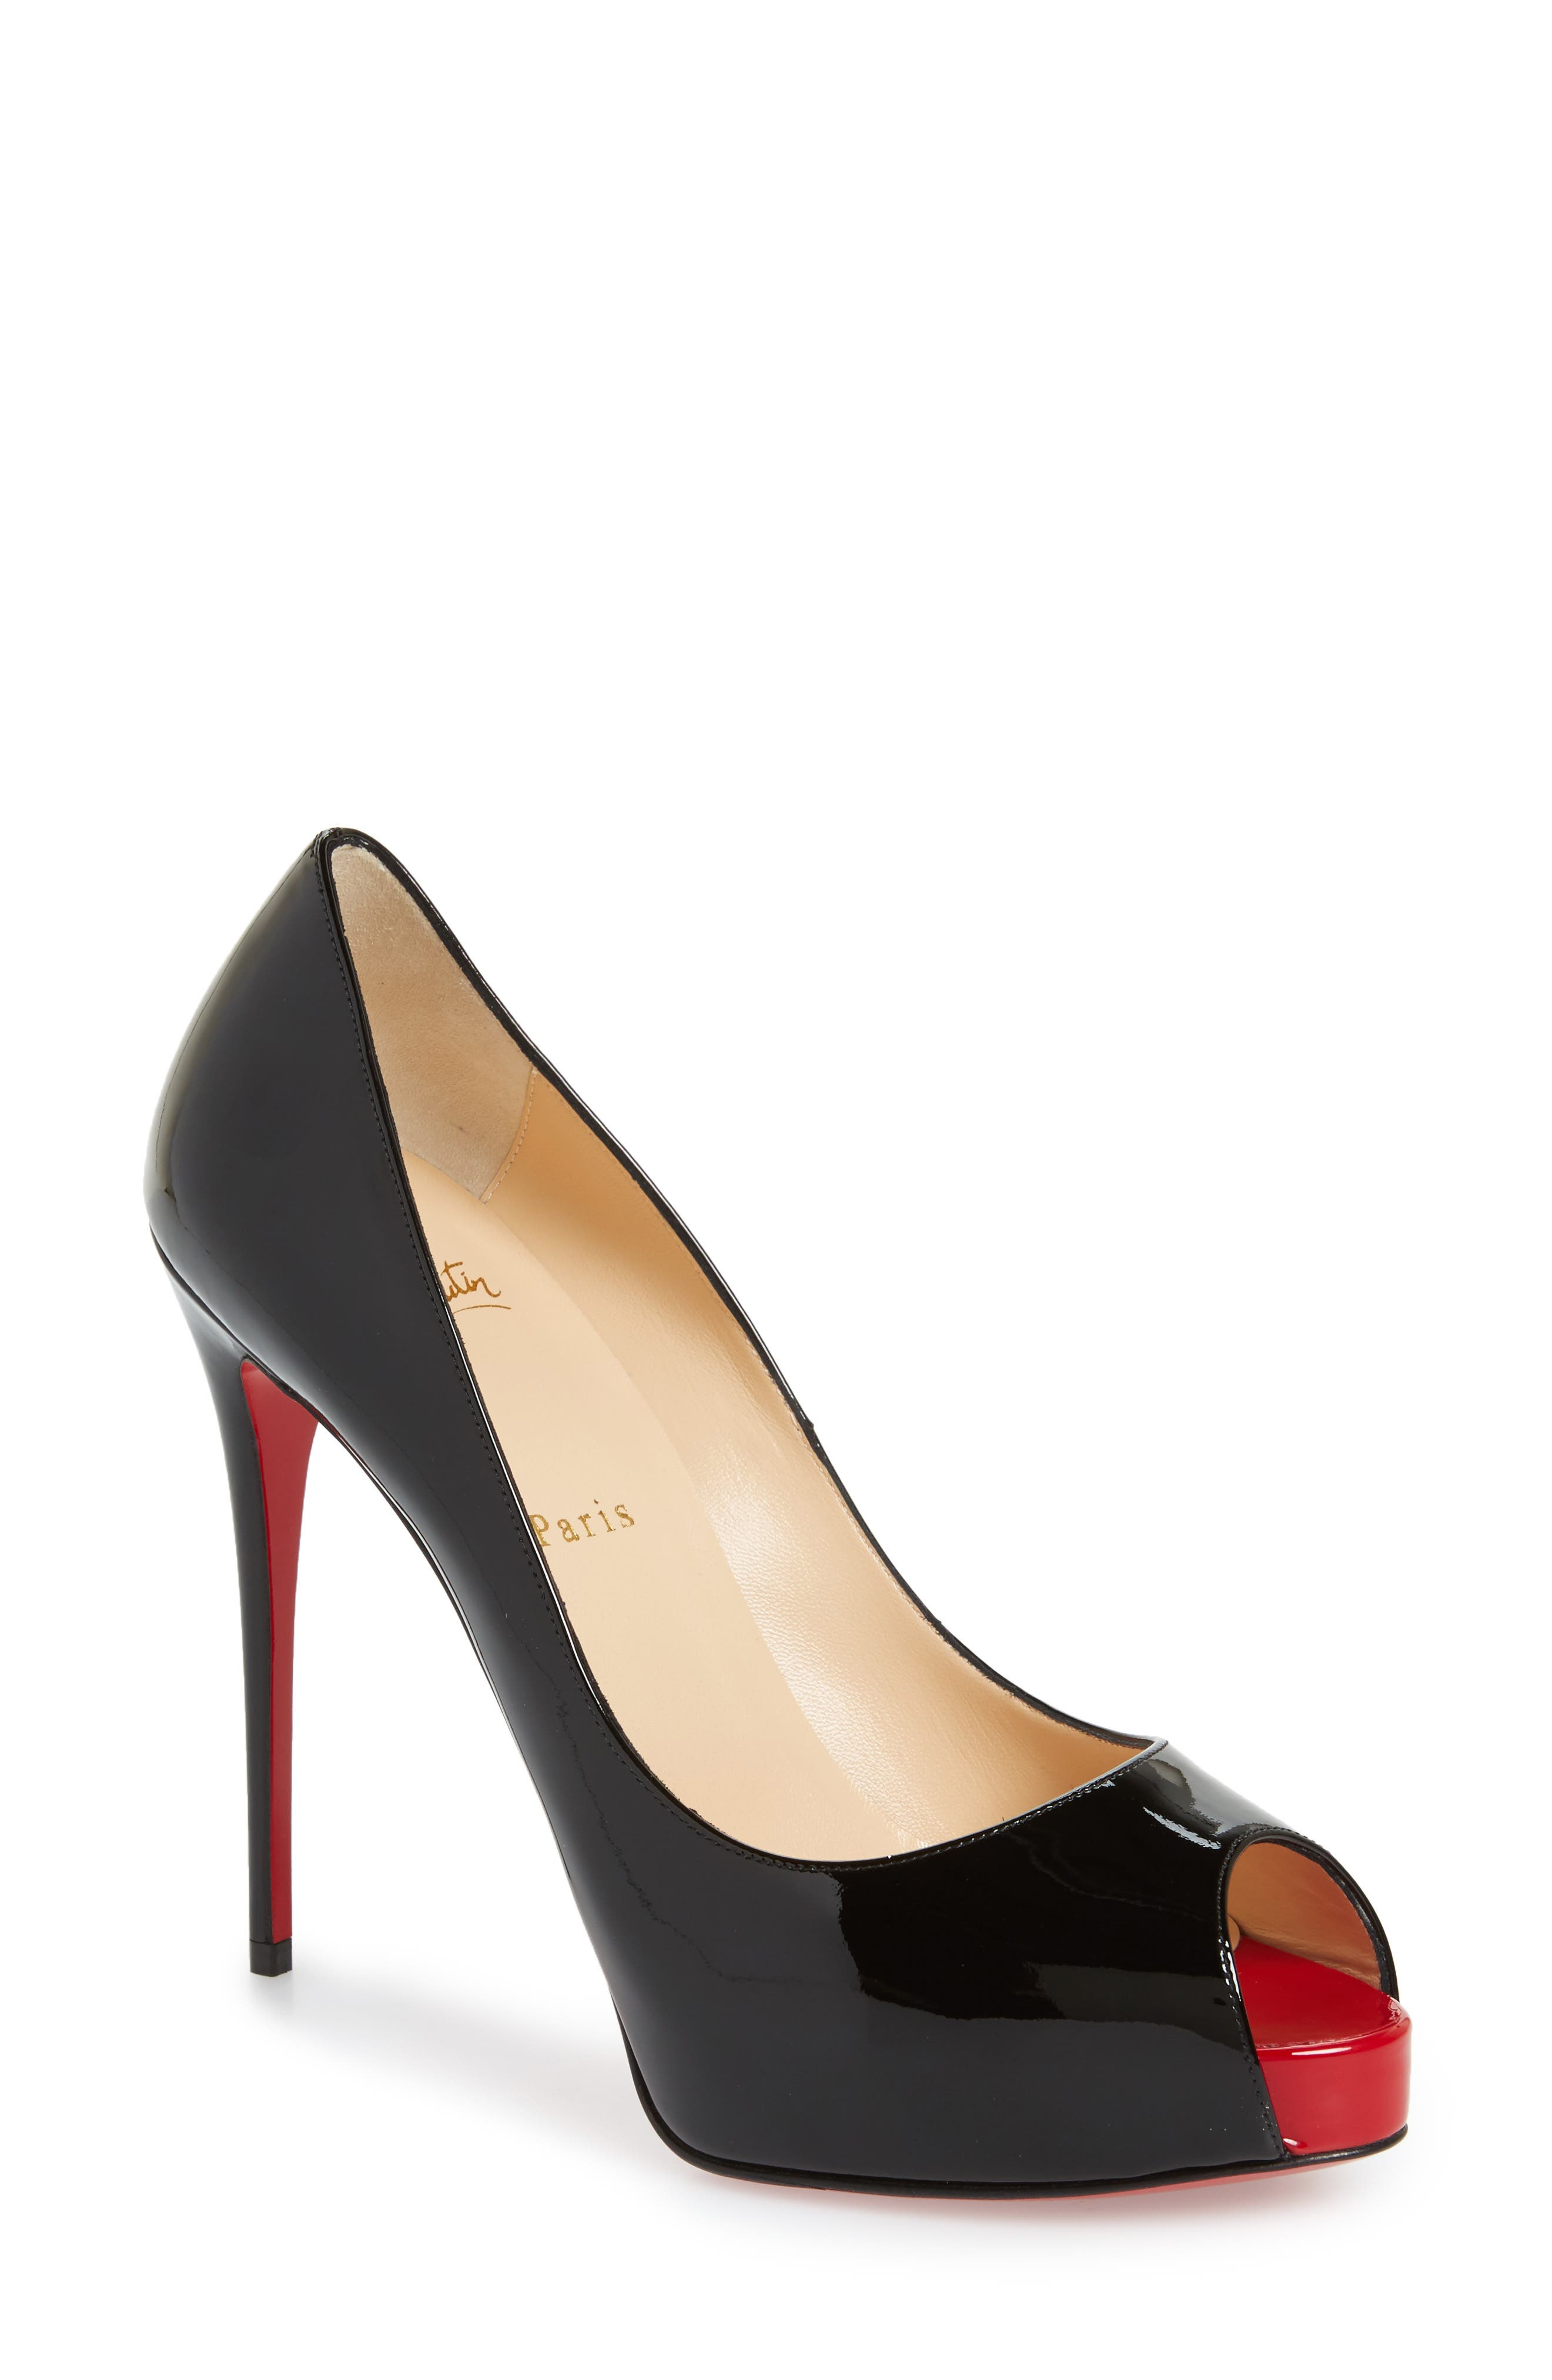 CHRISTIAN LOUBOUTIN, 'Prive' Open Toe Pump, Main thumbnail 1, color, BLACK/ RED